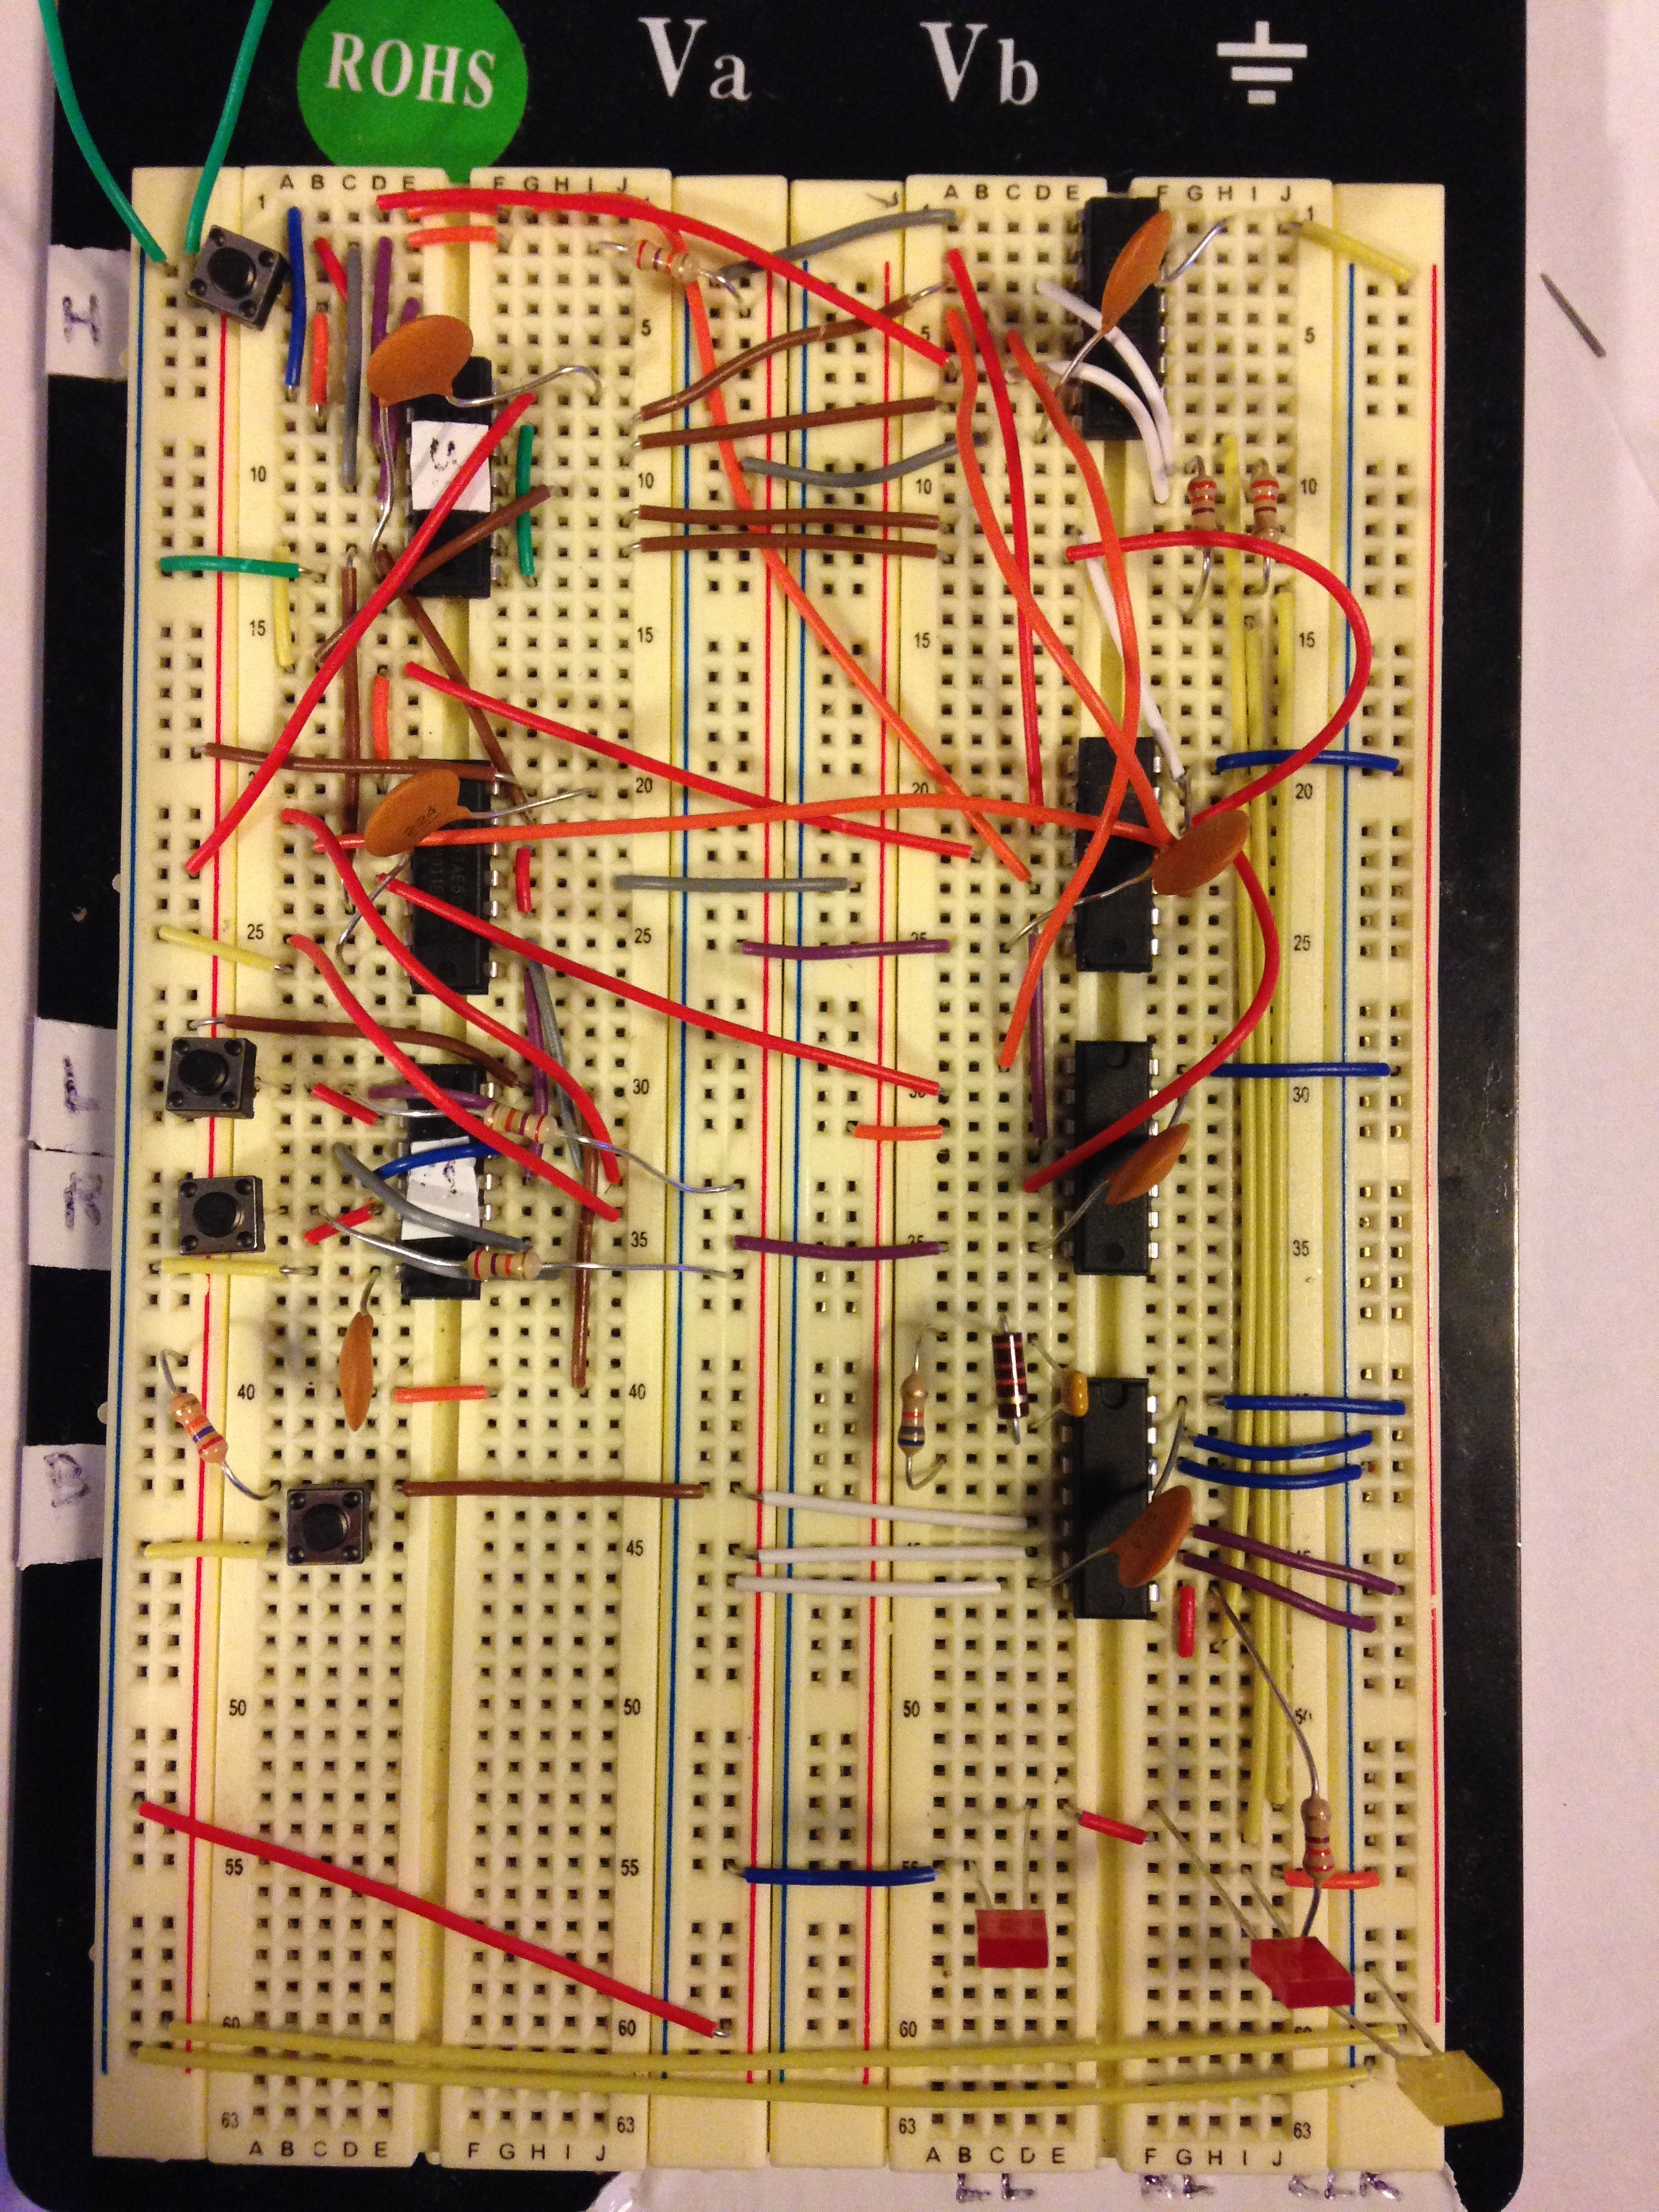 Accomplishments Where Integrated Circuits Are Used It Utilizes Discrete Logic To Realize A Finite State Machine This Circuit Uses Total Of 7 The Ic Components